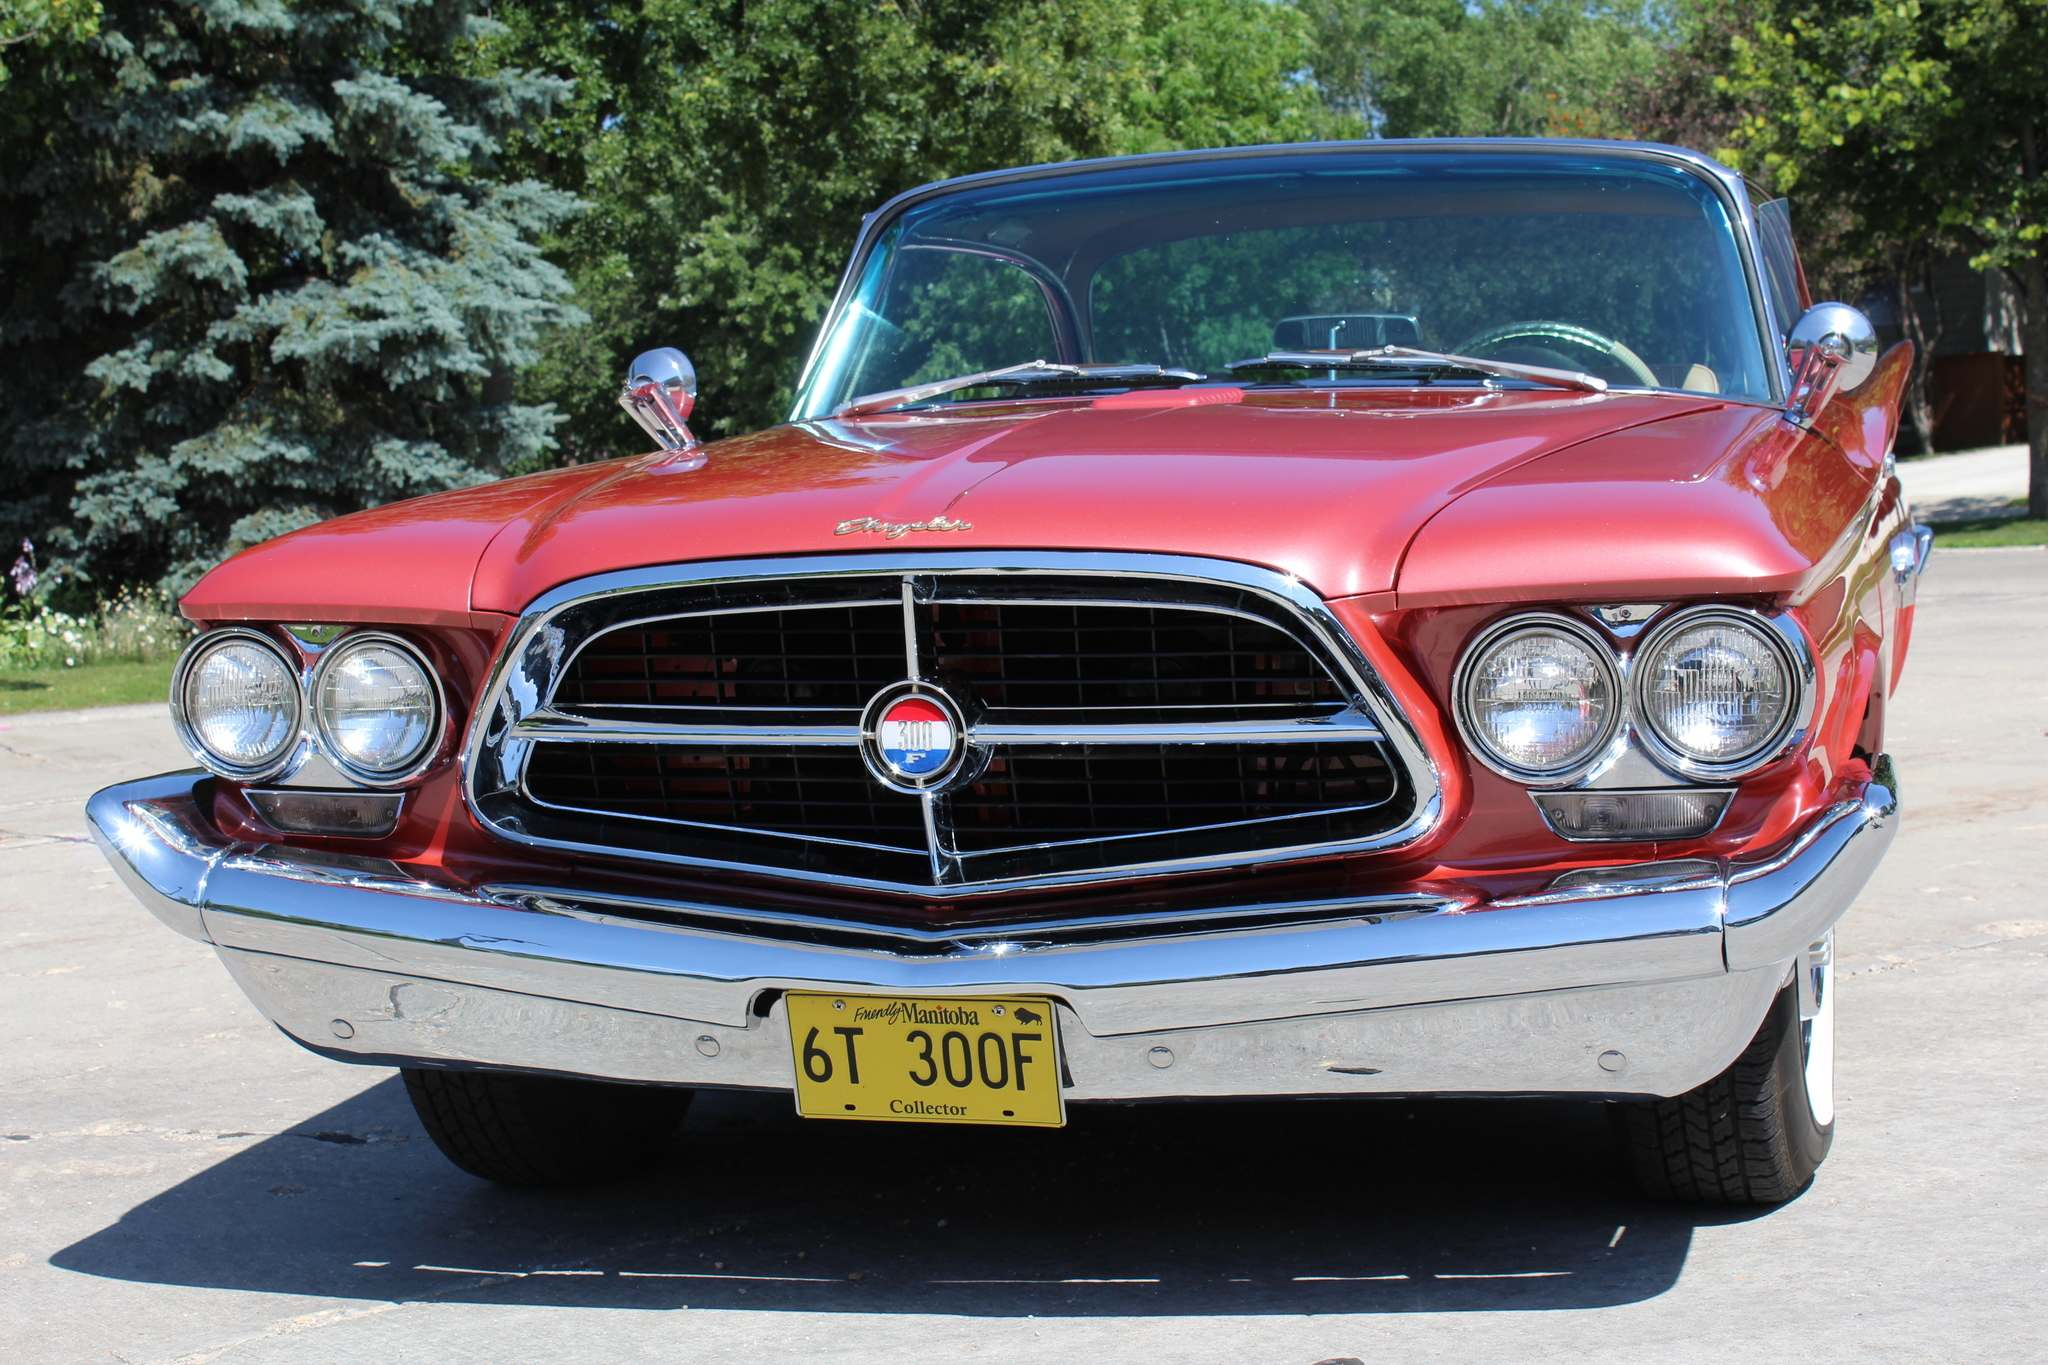 The car was from Madison, Wis., originally, but spent most of its life in southwest California before making its way to Ontario.